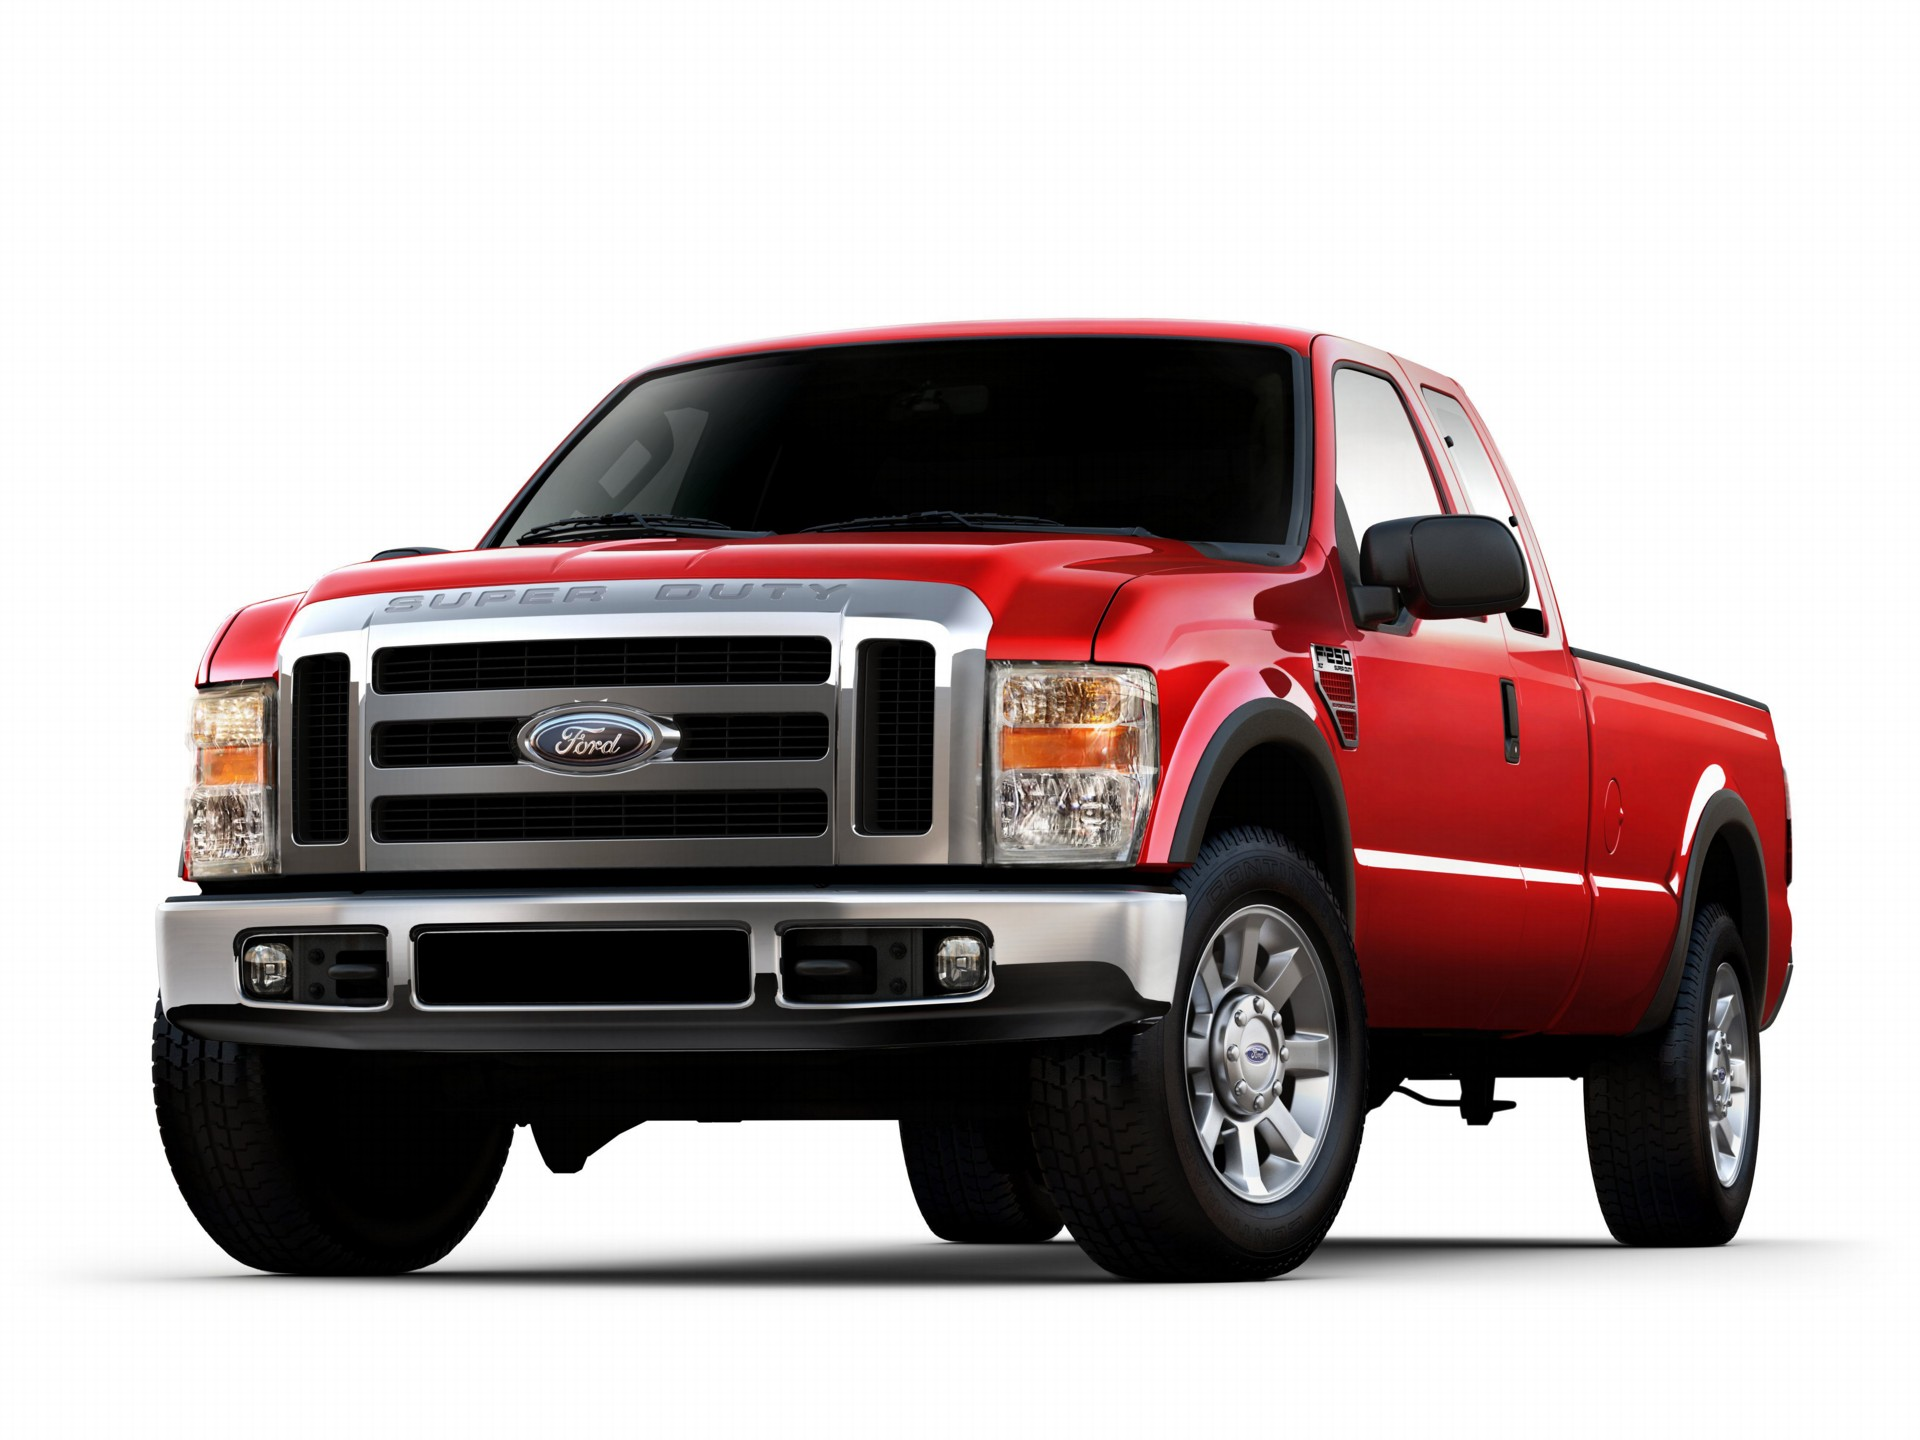 2008 Ford F-Series Super Duty News and Information